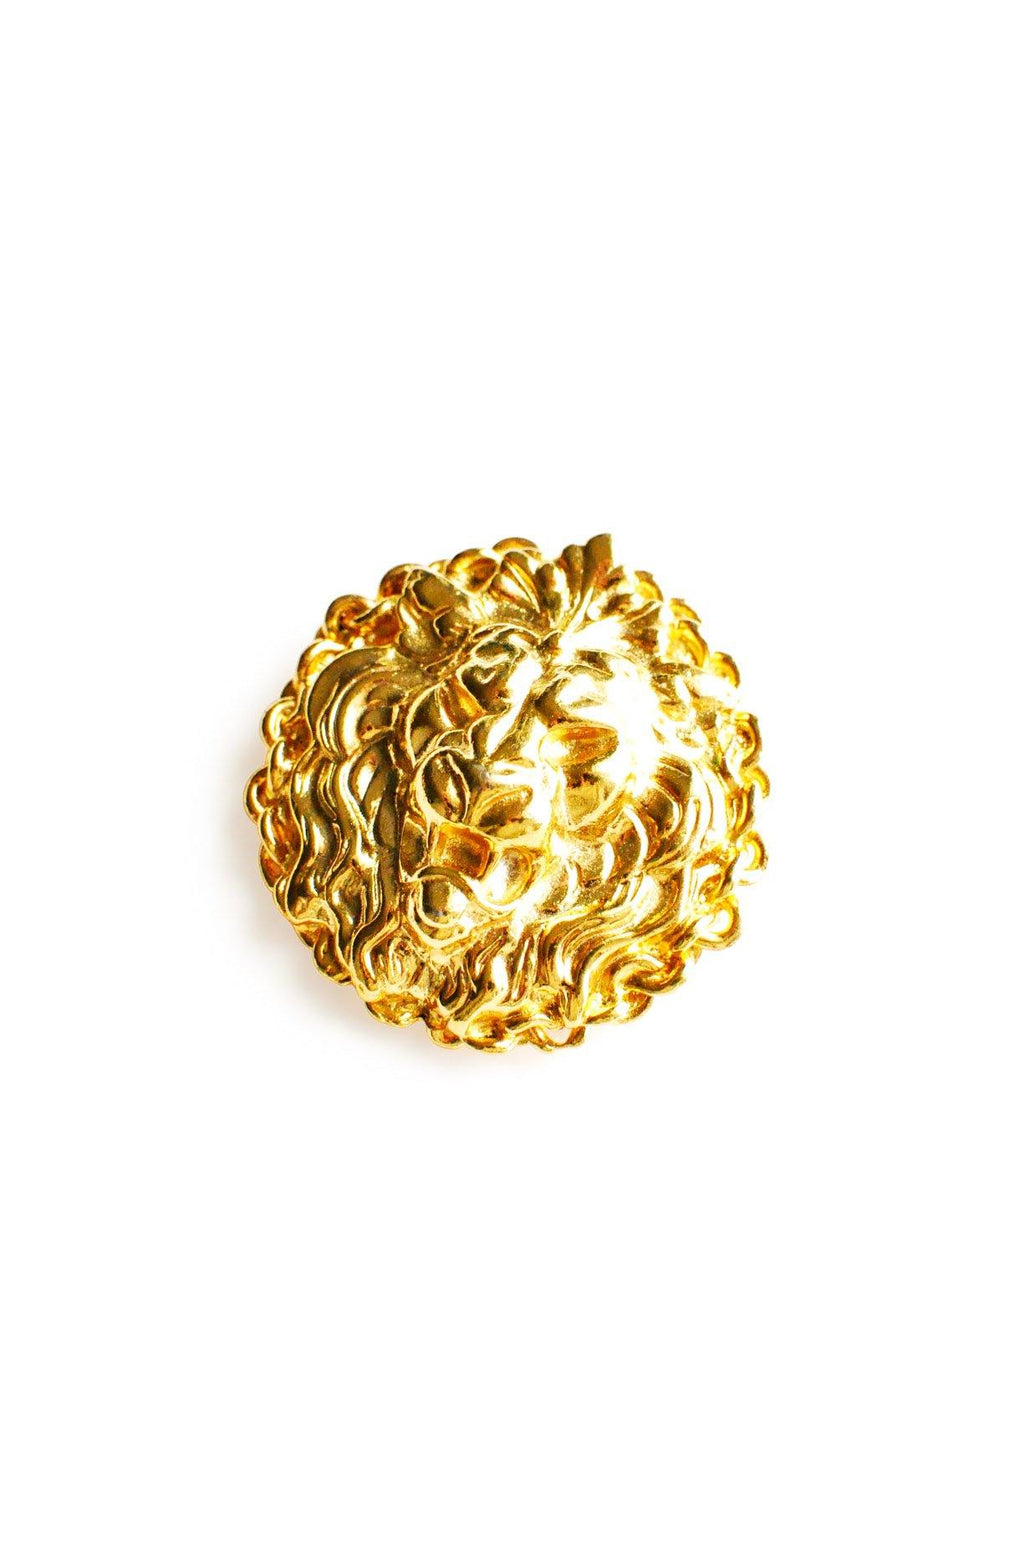 Gold Lion Brooch